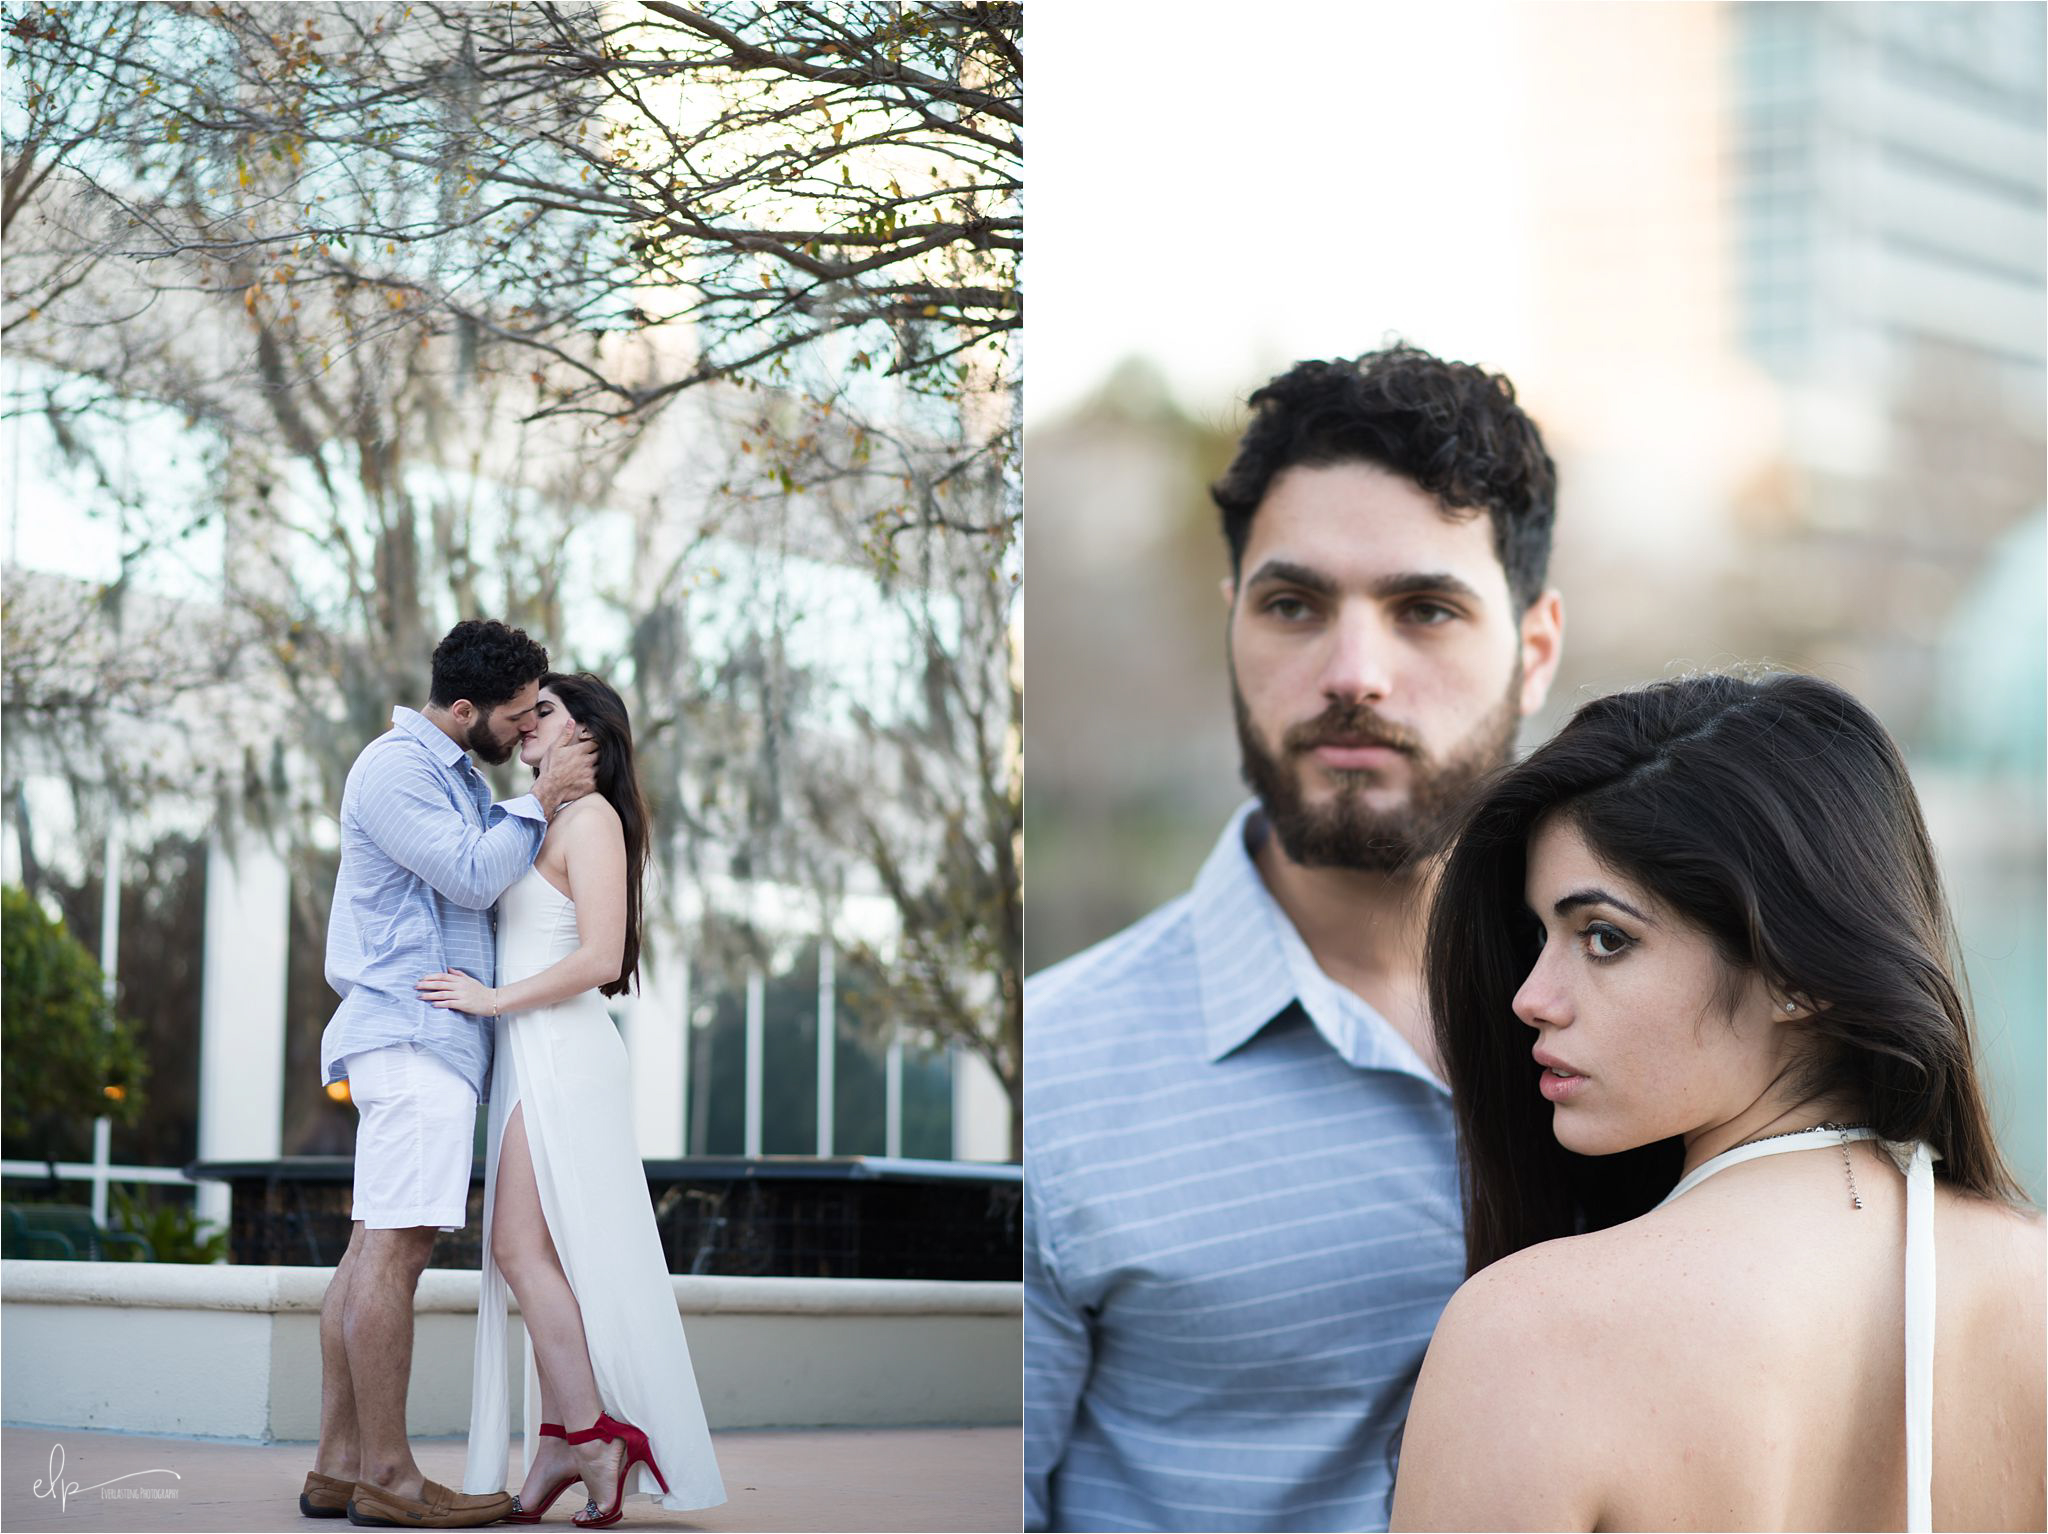 Photo shoot at Lake Eola Park.